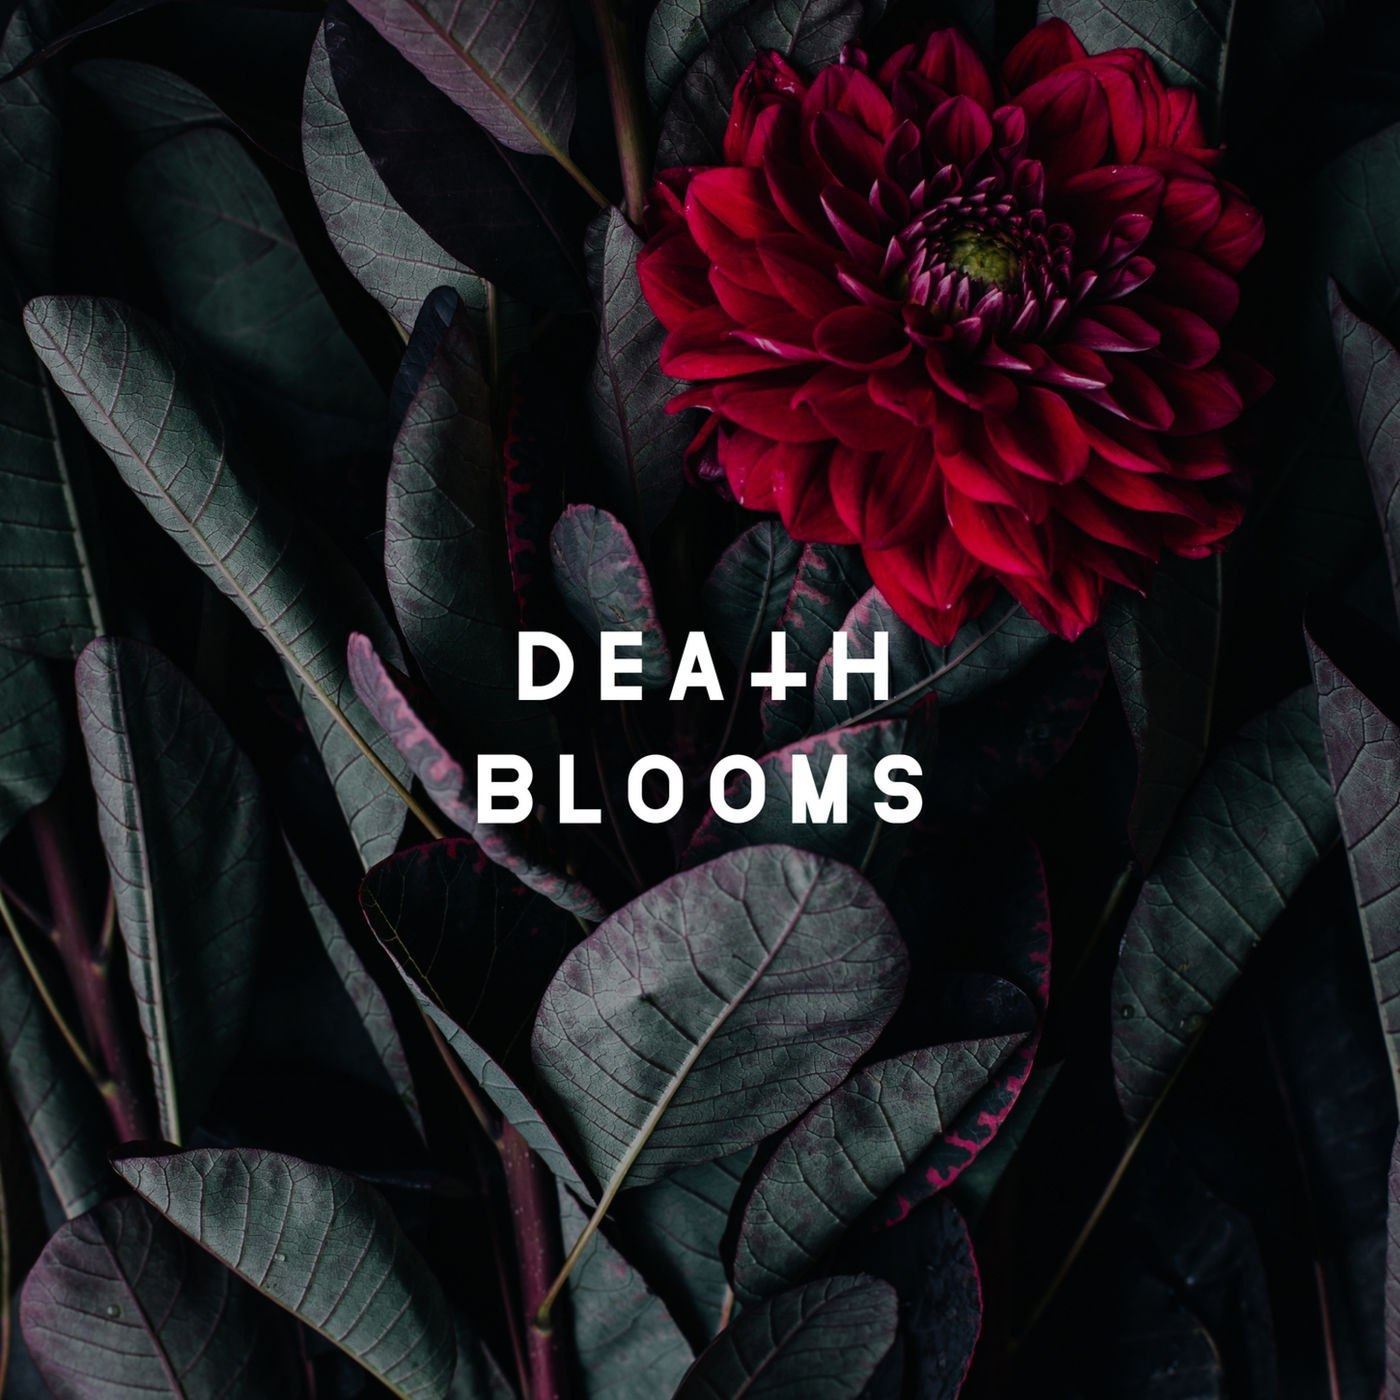 Death Blooms - Death Blooms [EP] (2017)